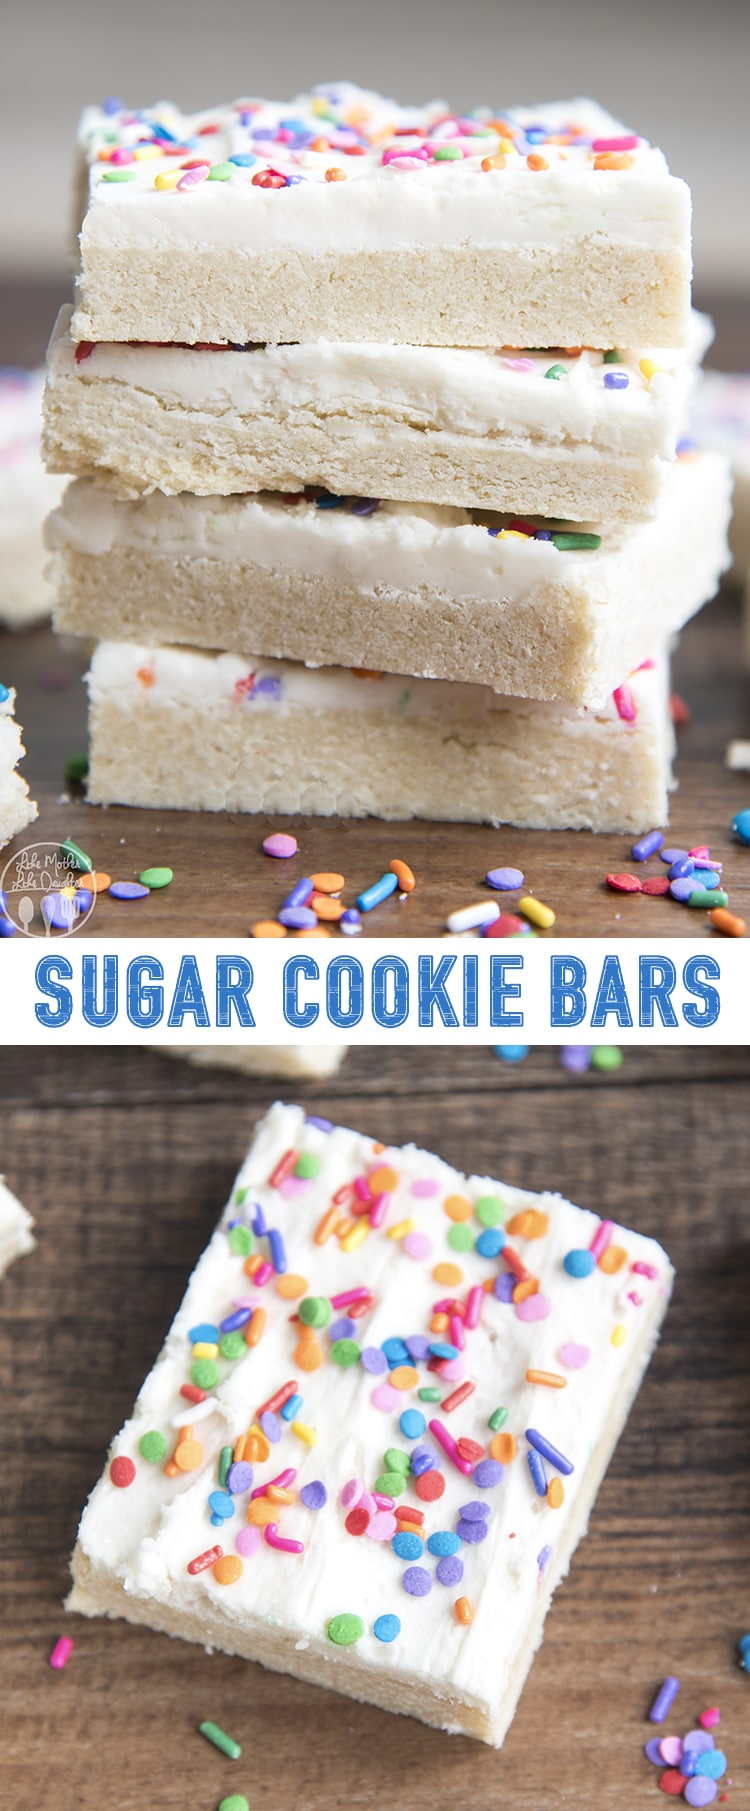 These sugar cookie bars are so much better than traditional sugar cookies. They are rich, thick, and so soft, without any chilling, rolling, or cutting the dough!